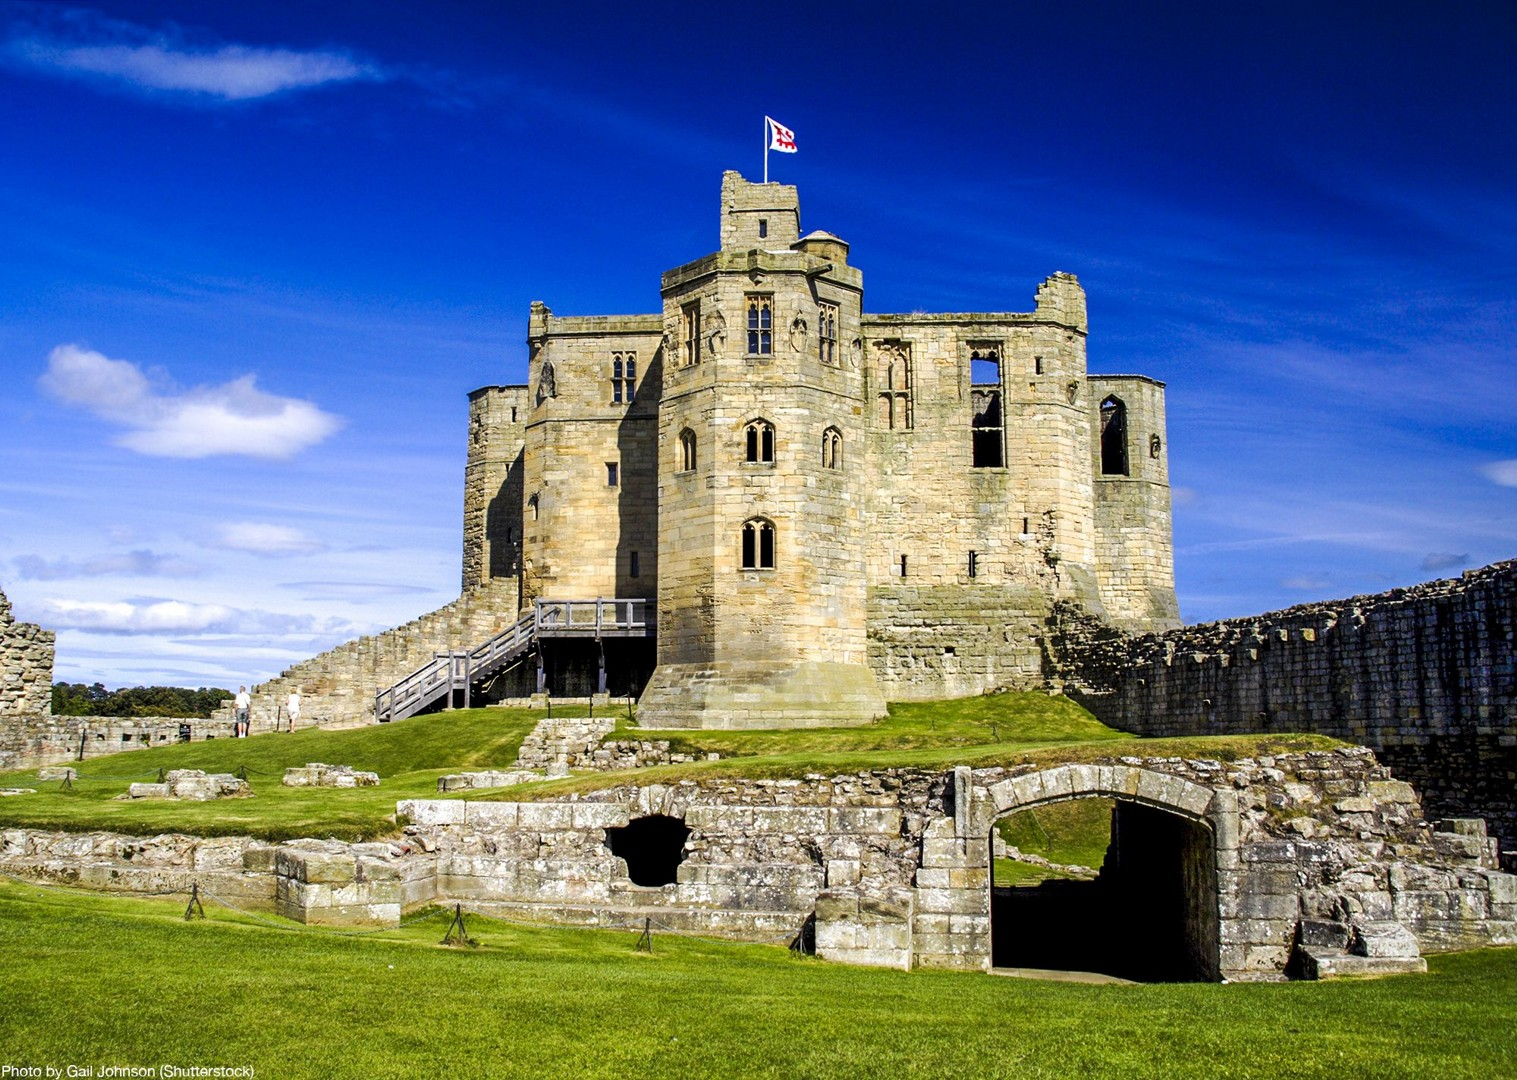 uk-traditional-castles-bamburgh-dunstanburgh-newton-by-the-sea-cycling-holiday.jpg - UK - Northumberland - Alnmouth - Self-Guided Leisure Cycling Holiday - Leisure Cycling